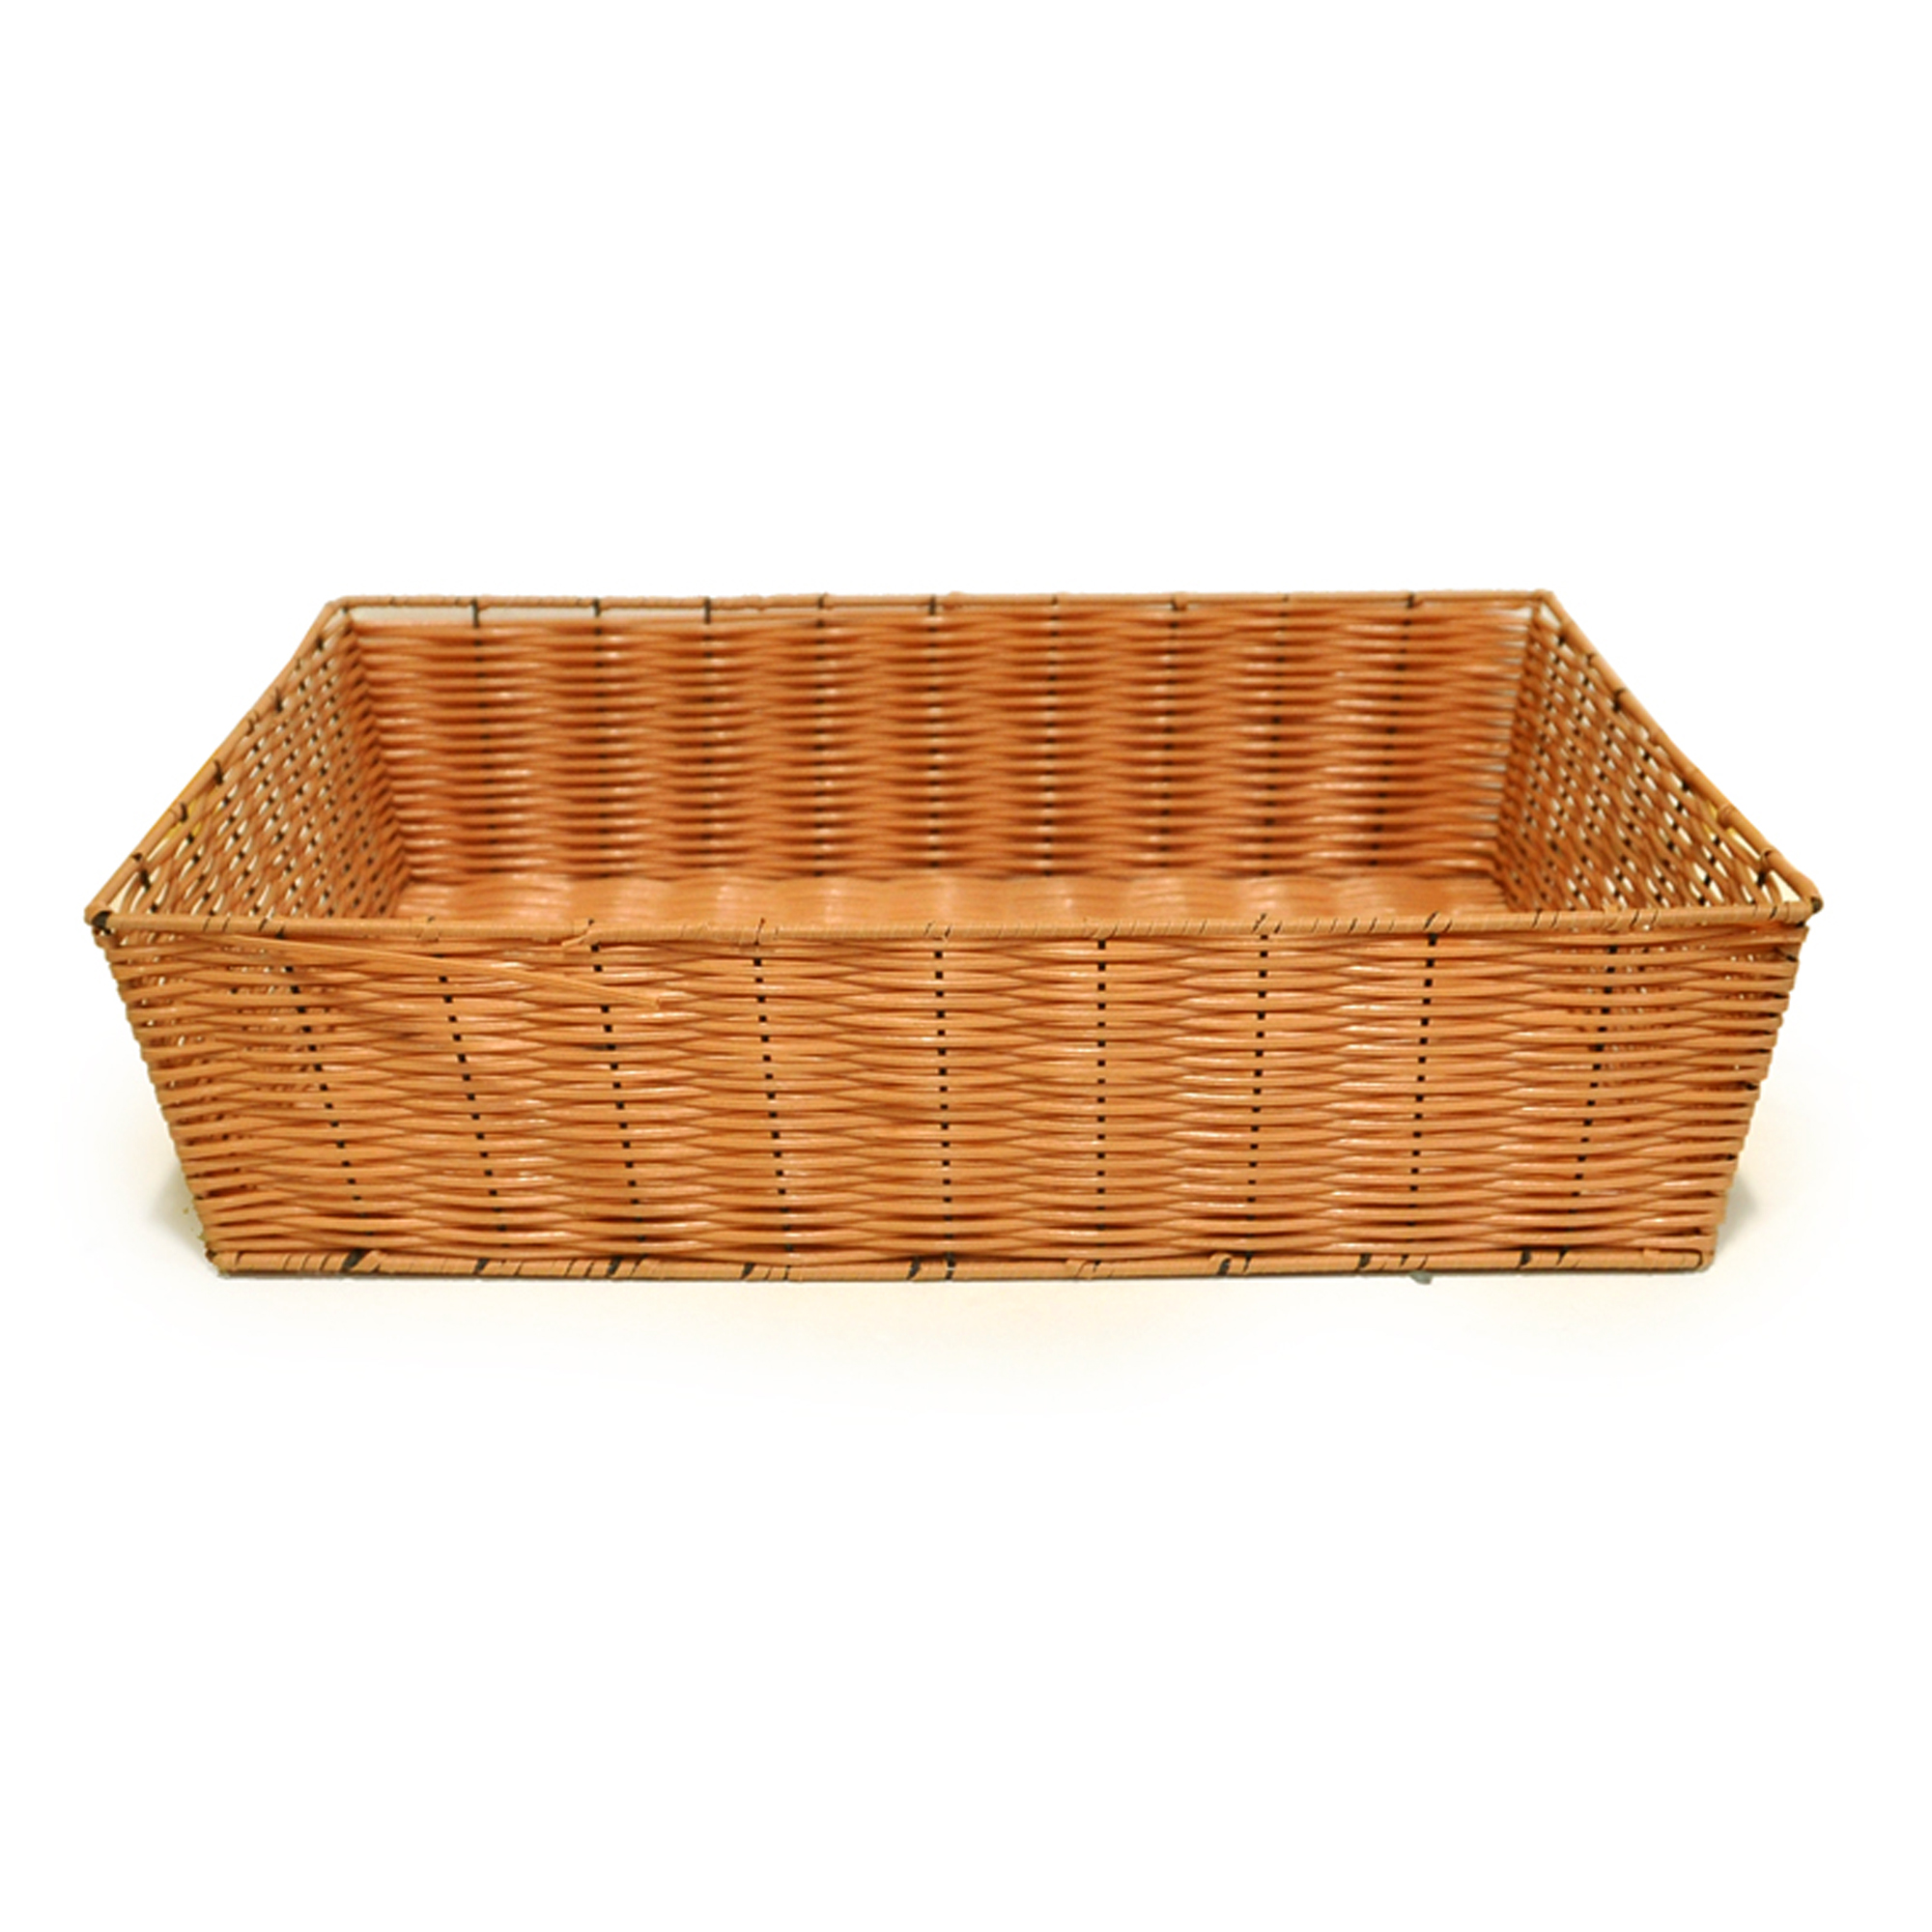 Deep Rectangular Synthetic Wicker Tray 20in